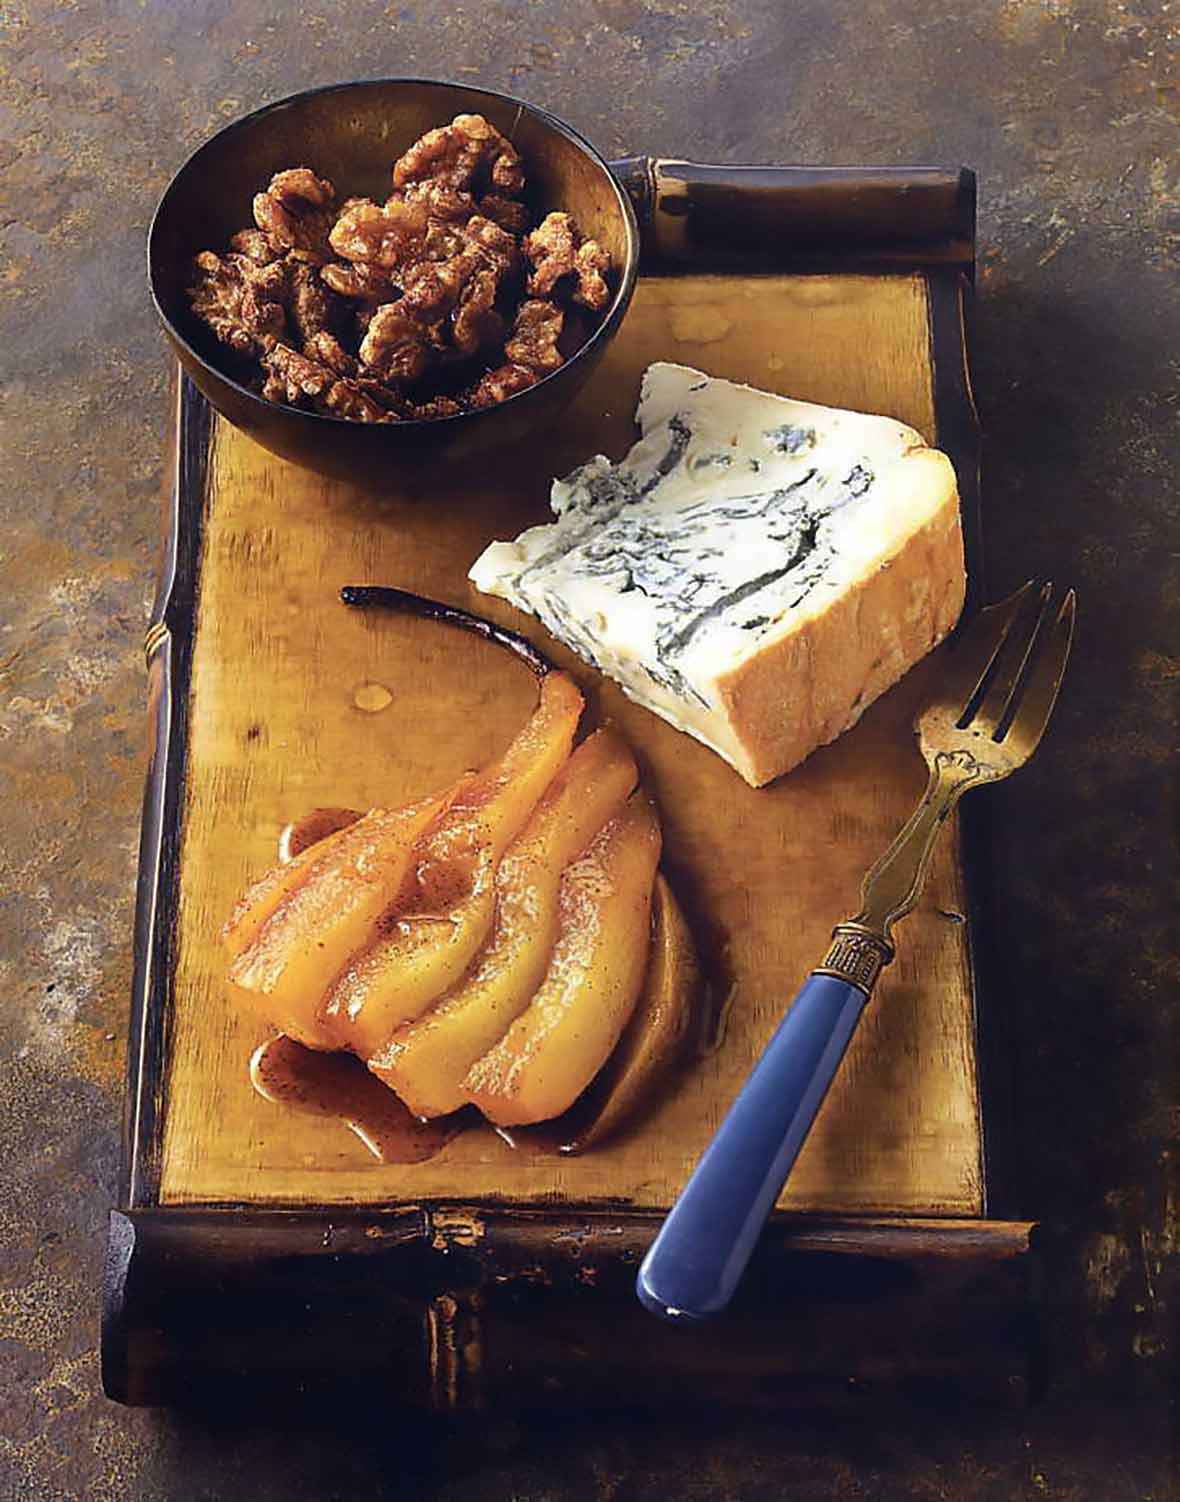 Gorgonzola Dolce with Roasted Pears